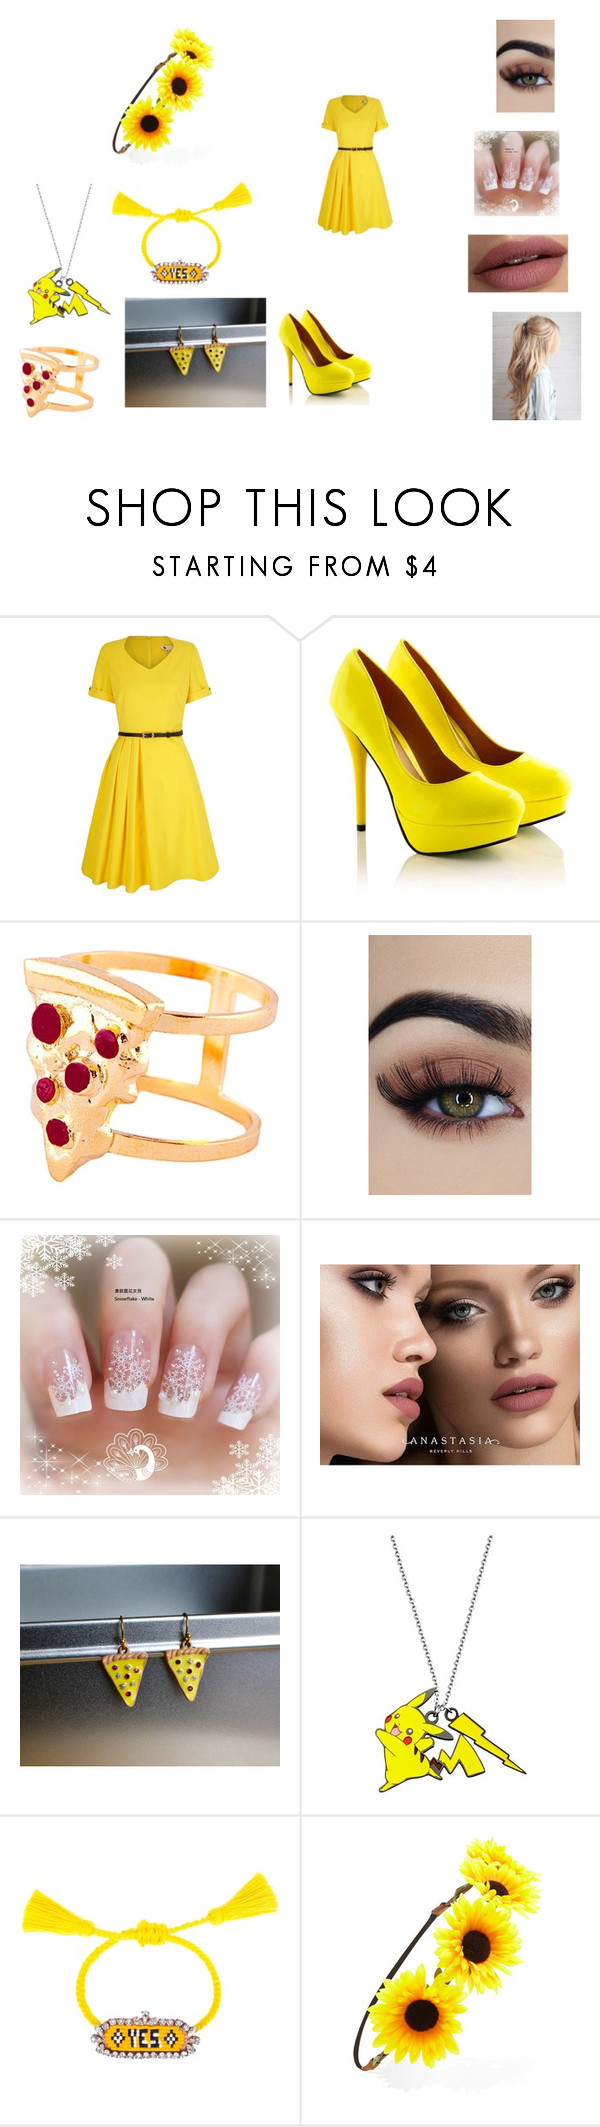 """Lily"" by hannah-may-malone on Polyvore featuring Yumi, Glenda López, Anastasia Beverly Hills, Shourouk and Forever 21"